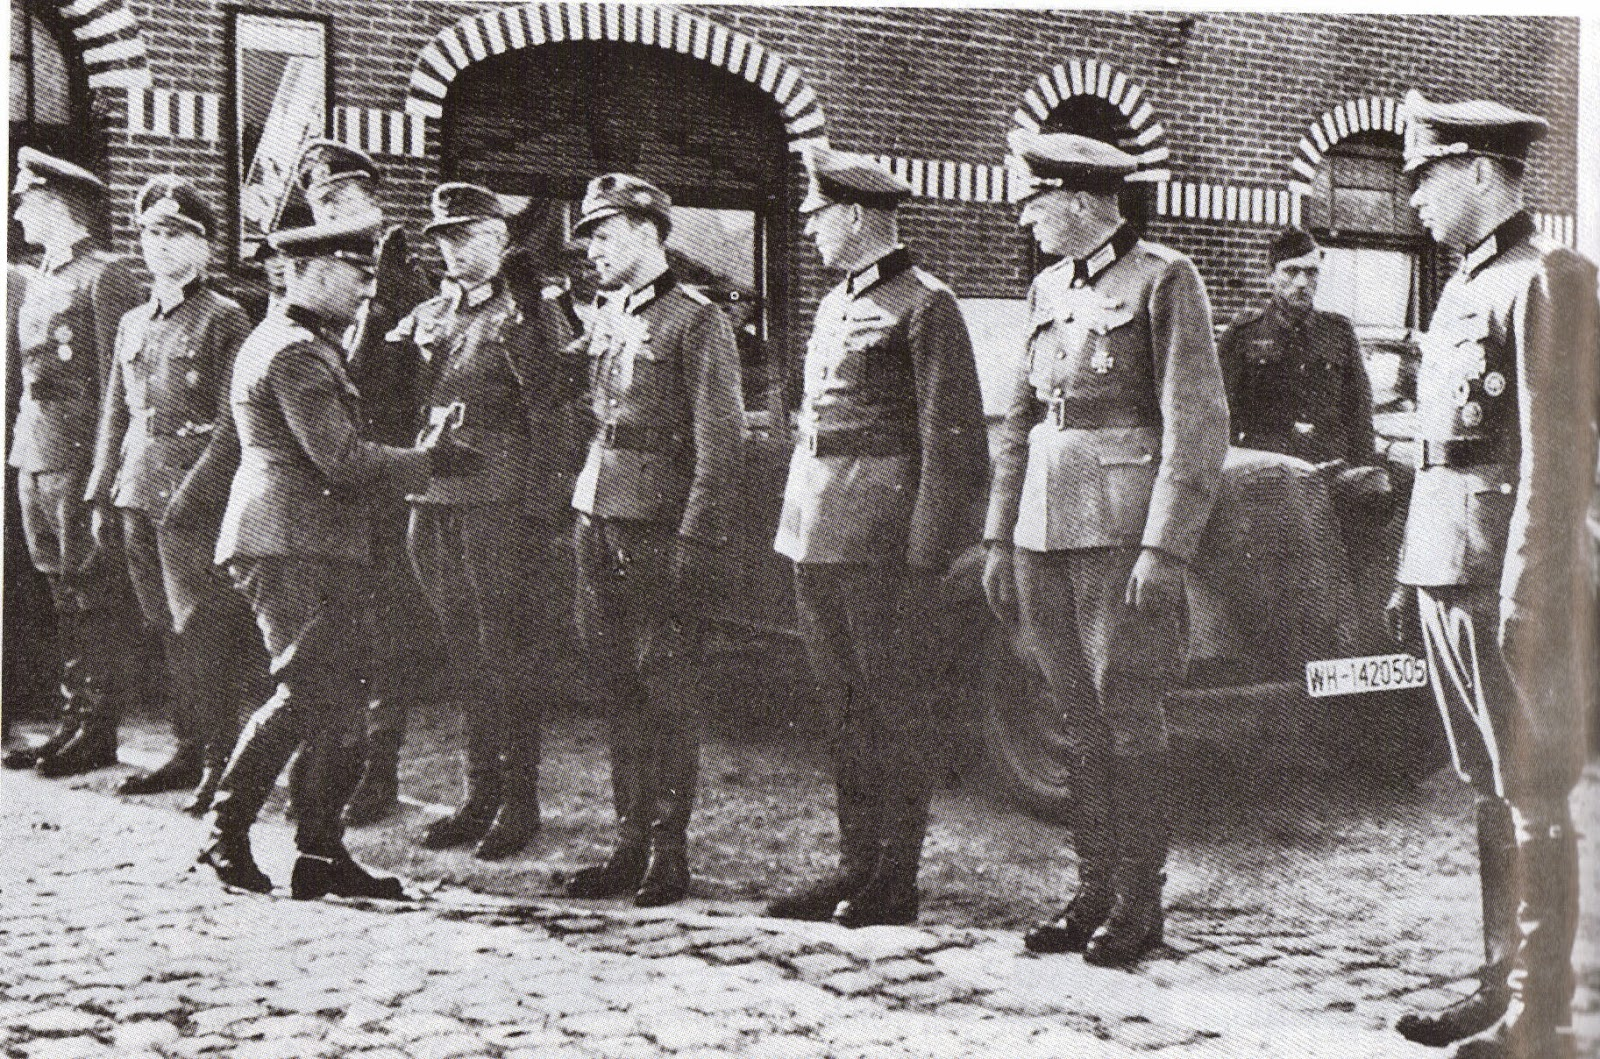 14-The divisional commander Lieutenant General Dr Franz Beyer thanks the Divisional Staff Officers for their work during the reorganization of the division.jpg